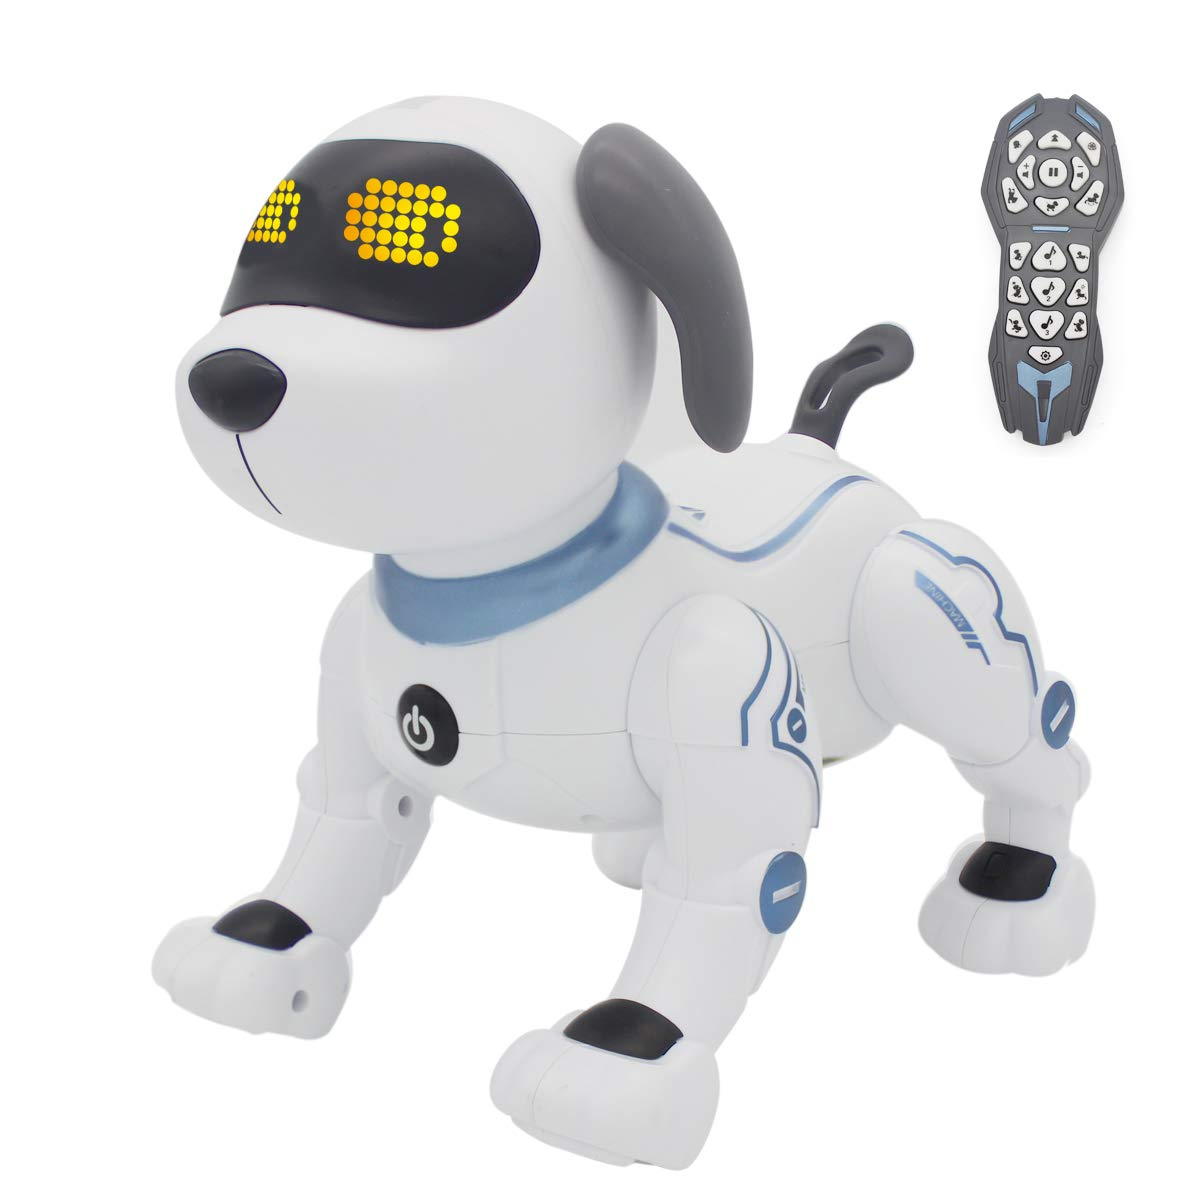 fisca Remote Control Dog, RC Robotic Stunt Puppy Toys Handstand Push-up Electronic Pets Dancing Programmable Robot with Sound for Kids Boys and Girls Age 6, 7, 8, 9, 10 Year Old